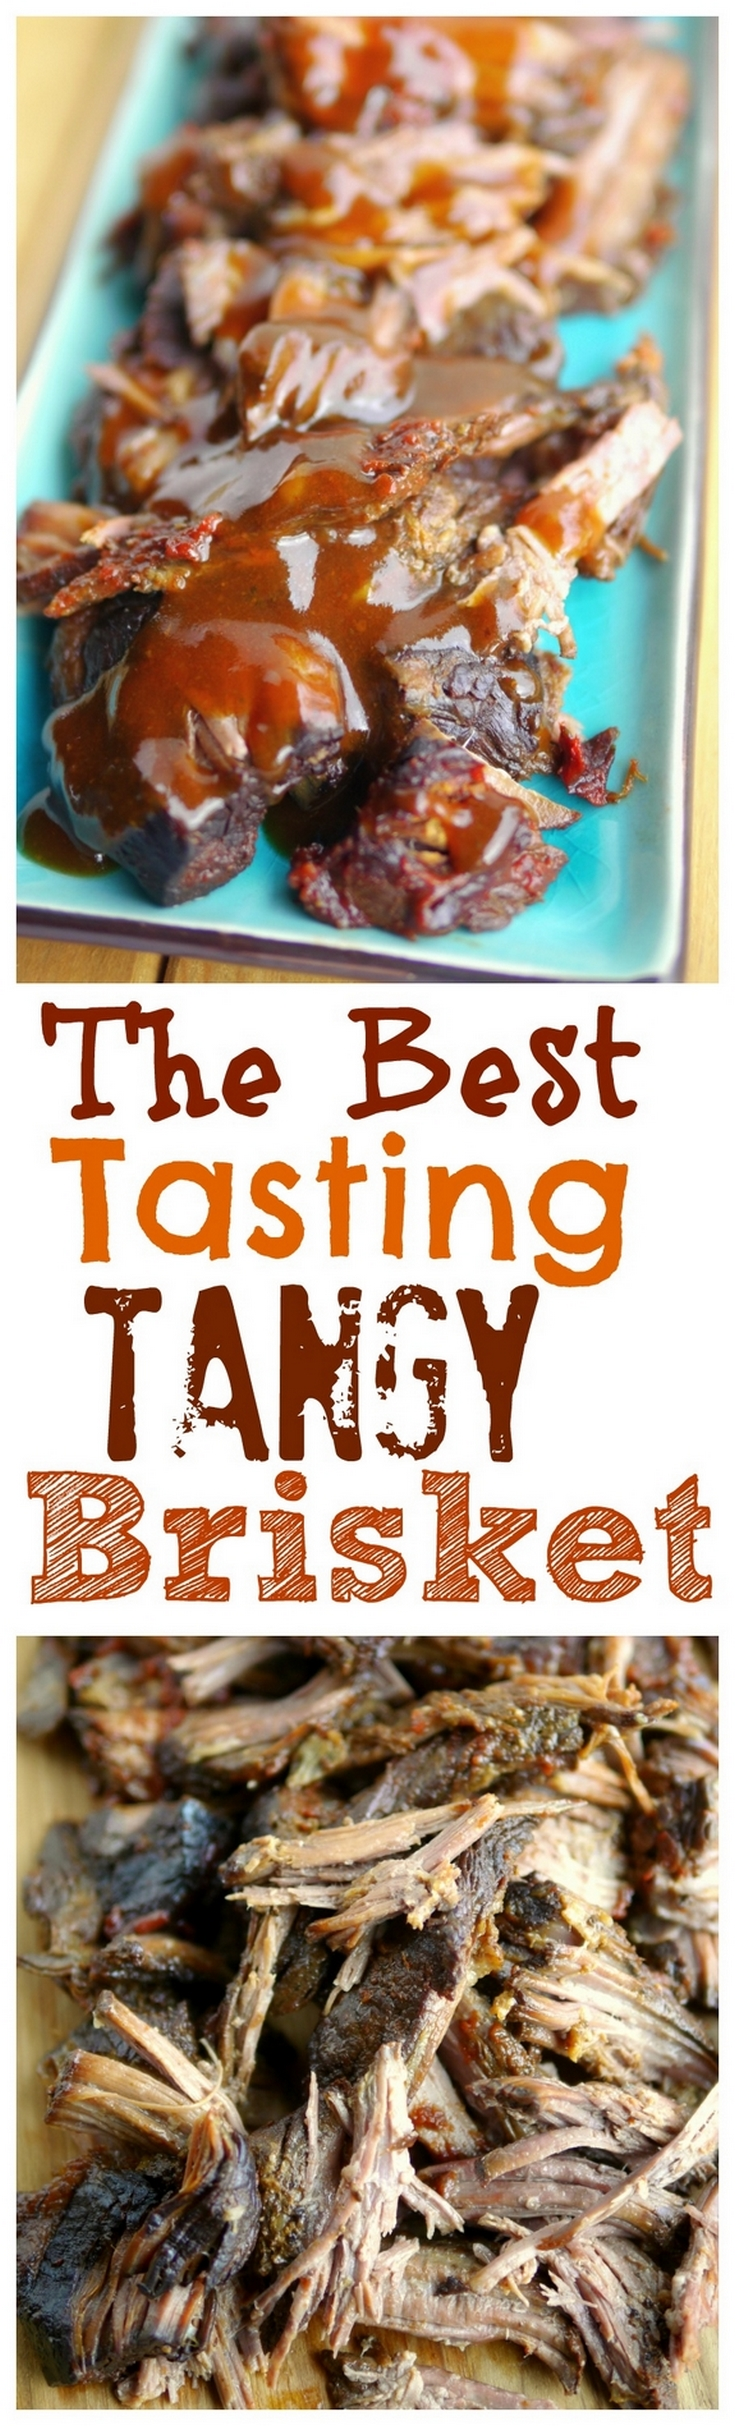 VIDEO + RECIPE: The Best Tasting Slow Cooker Tangy Brisket Recipe will become a family favorite for years to come. The fork-tender, melt in your mouth meat and mouthwatering sauce are a true example of what brisket is supposed to taste like from NoblePig.com. #noblepig #slowcooker #slowcookerbrisket #beef #easydinners via @cmpollak1